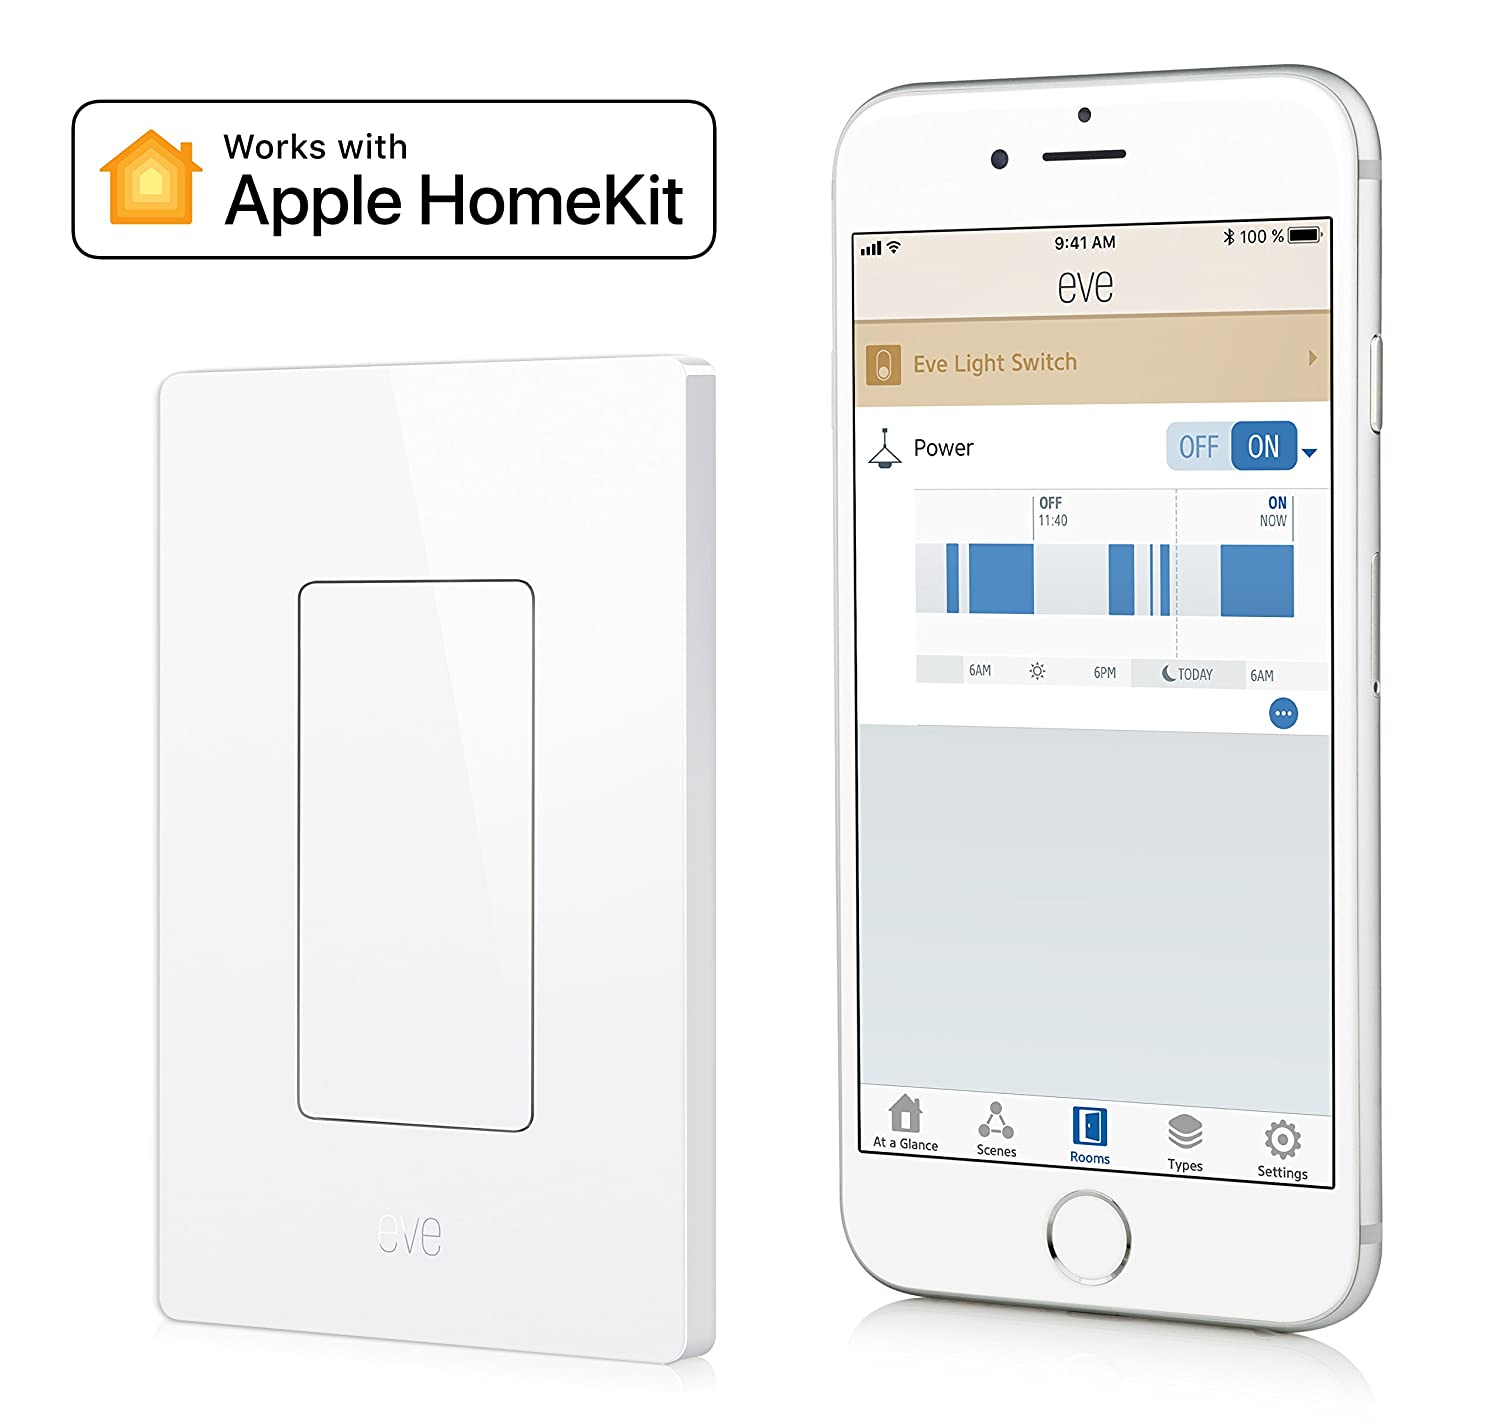 Eve Light Switch Connected Wall Easily Upgrade To Convert 3way Intelligent Automate Your Lighting With Timers And Rules Bluetooth Low Energy White Apple